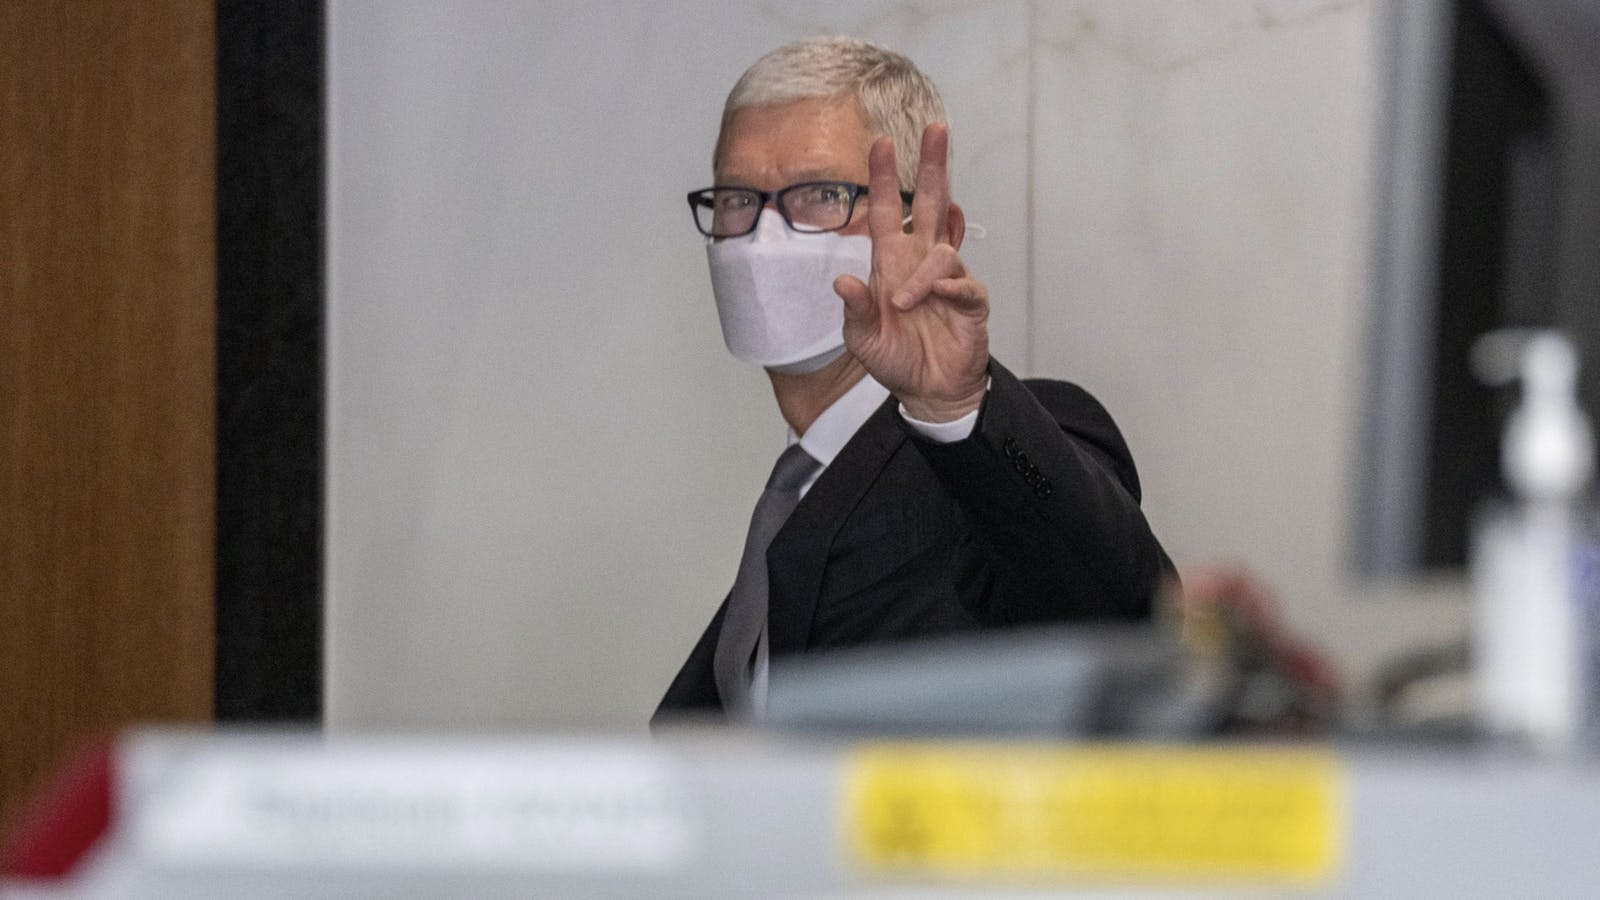 Apple's Tim Cook in the courthouse today. Photo by Bloomberg